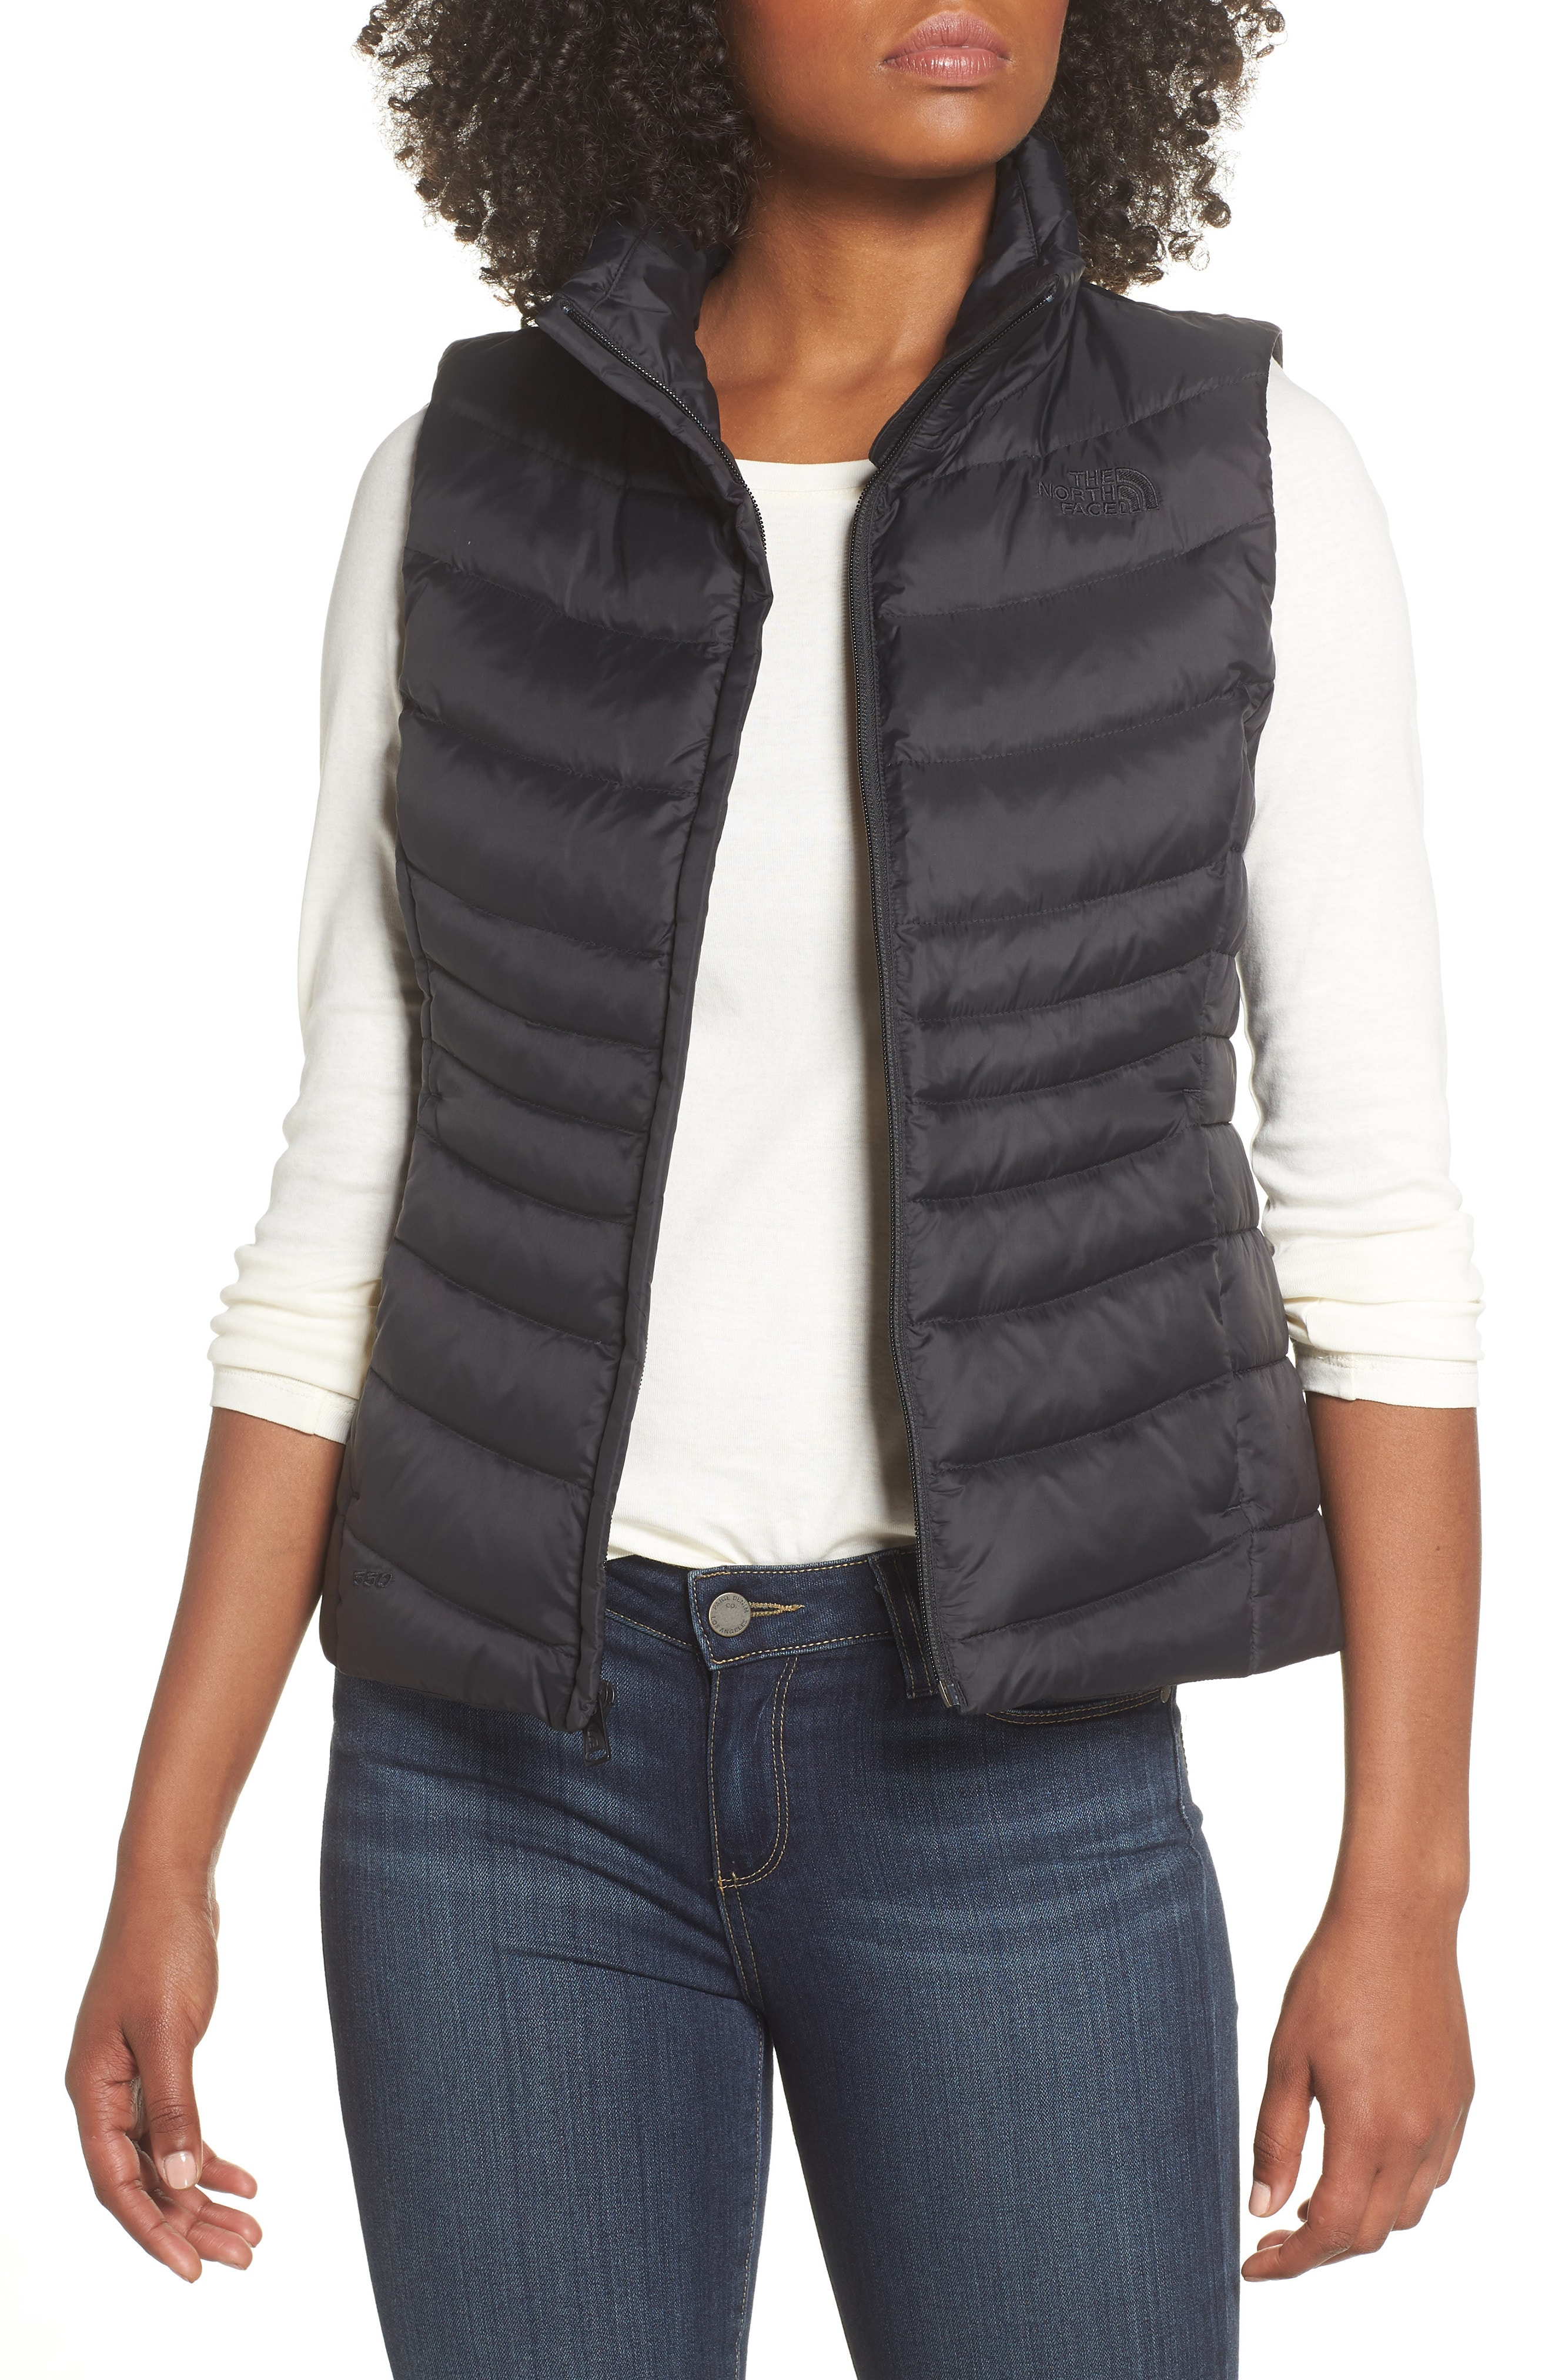 Women's Vests | Nordstrom